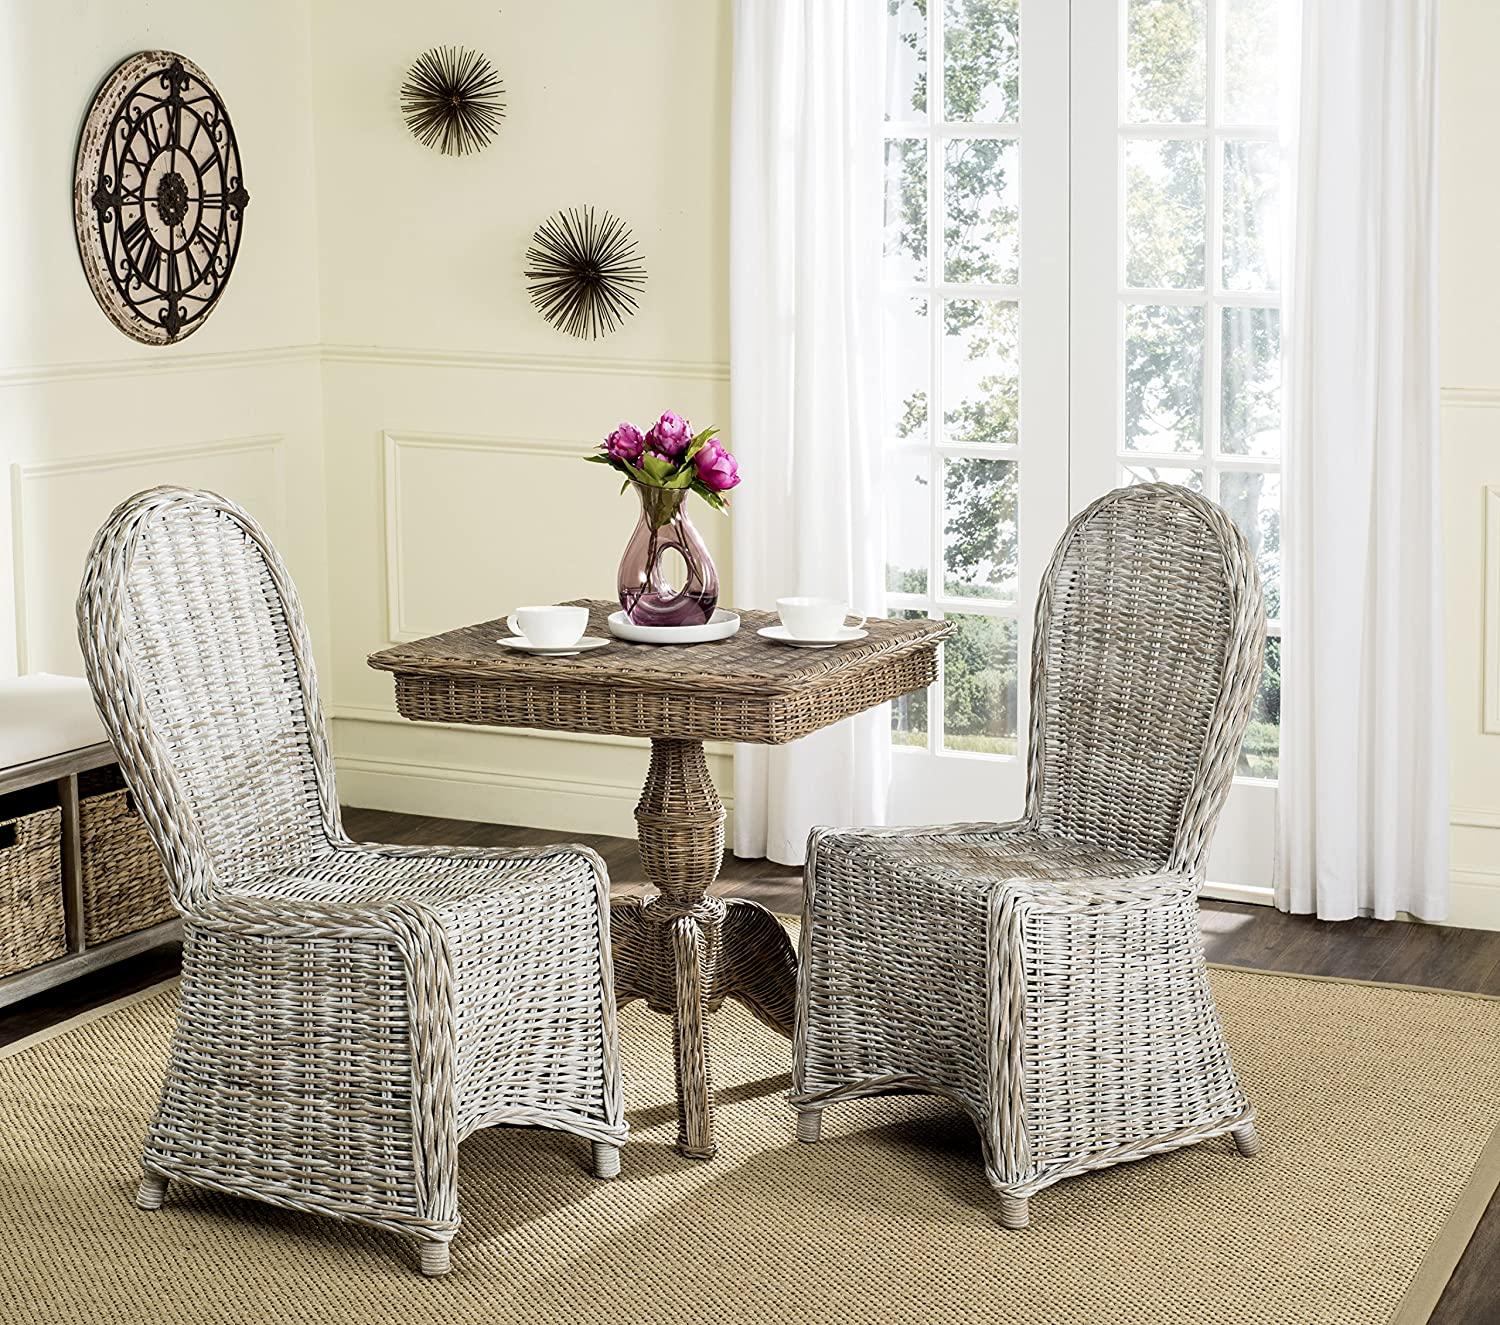 Safavieh Home Collection Idola White Wash Wicker Dining Chair Set of 2 , 19